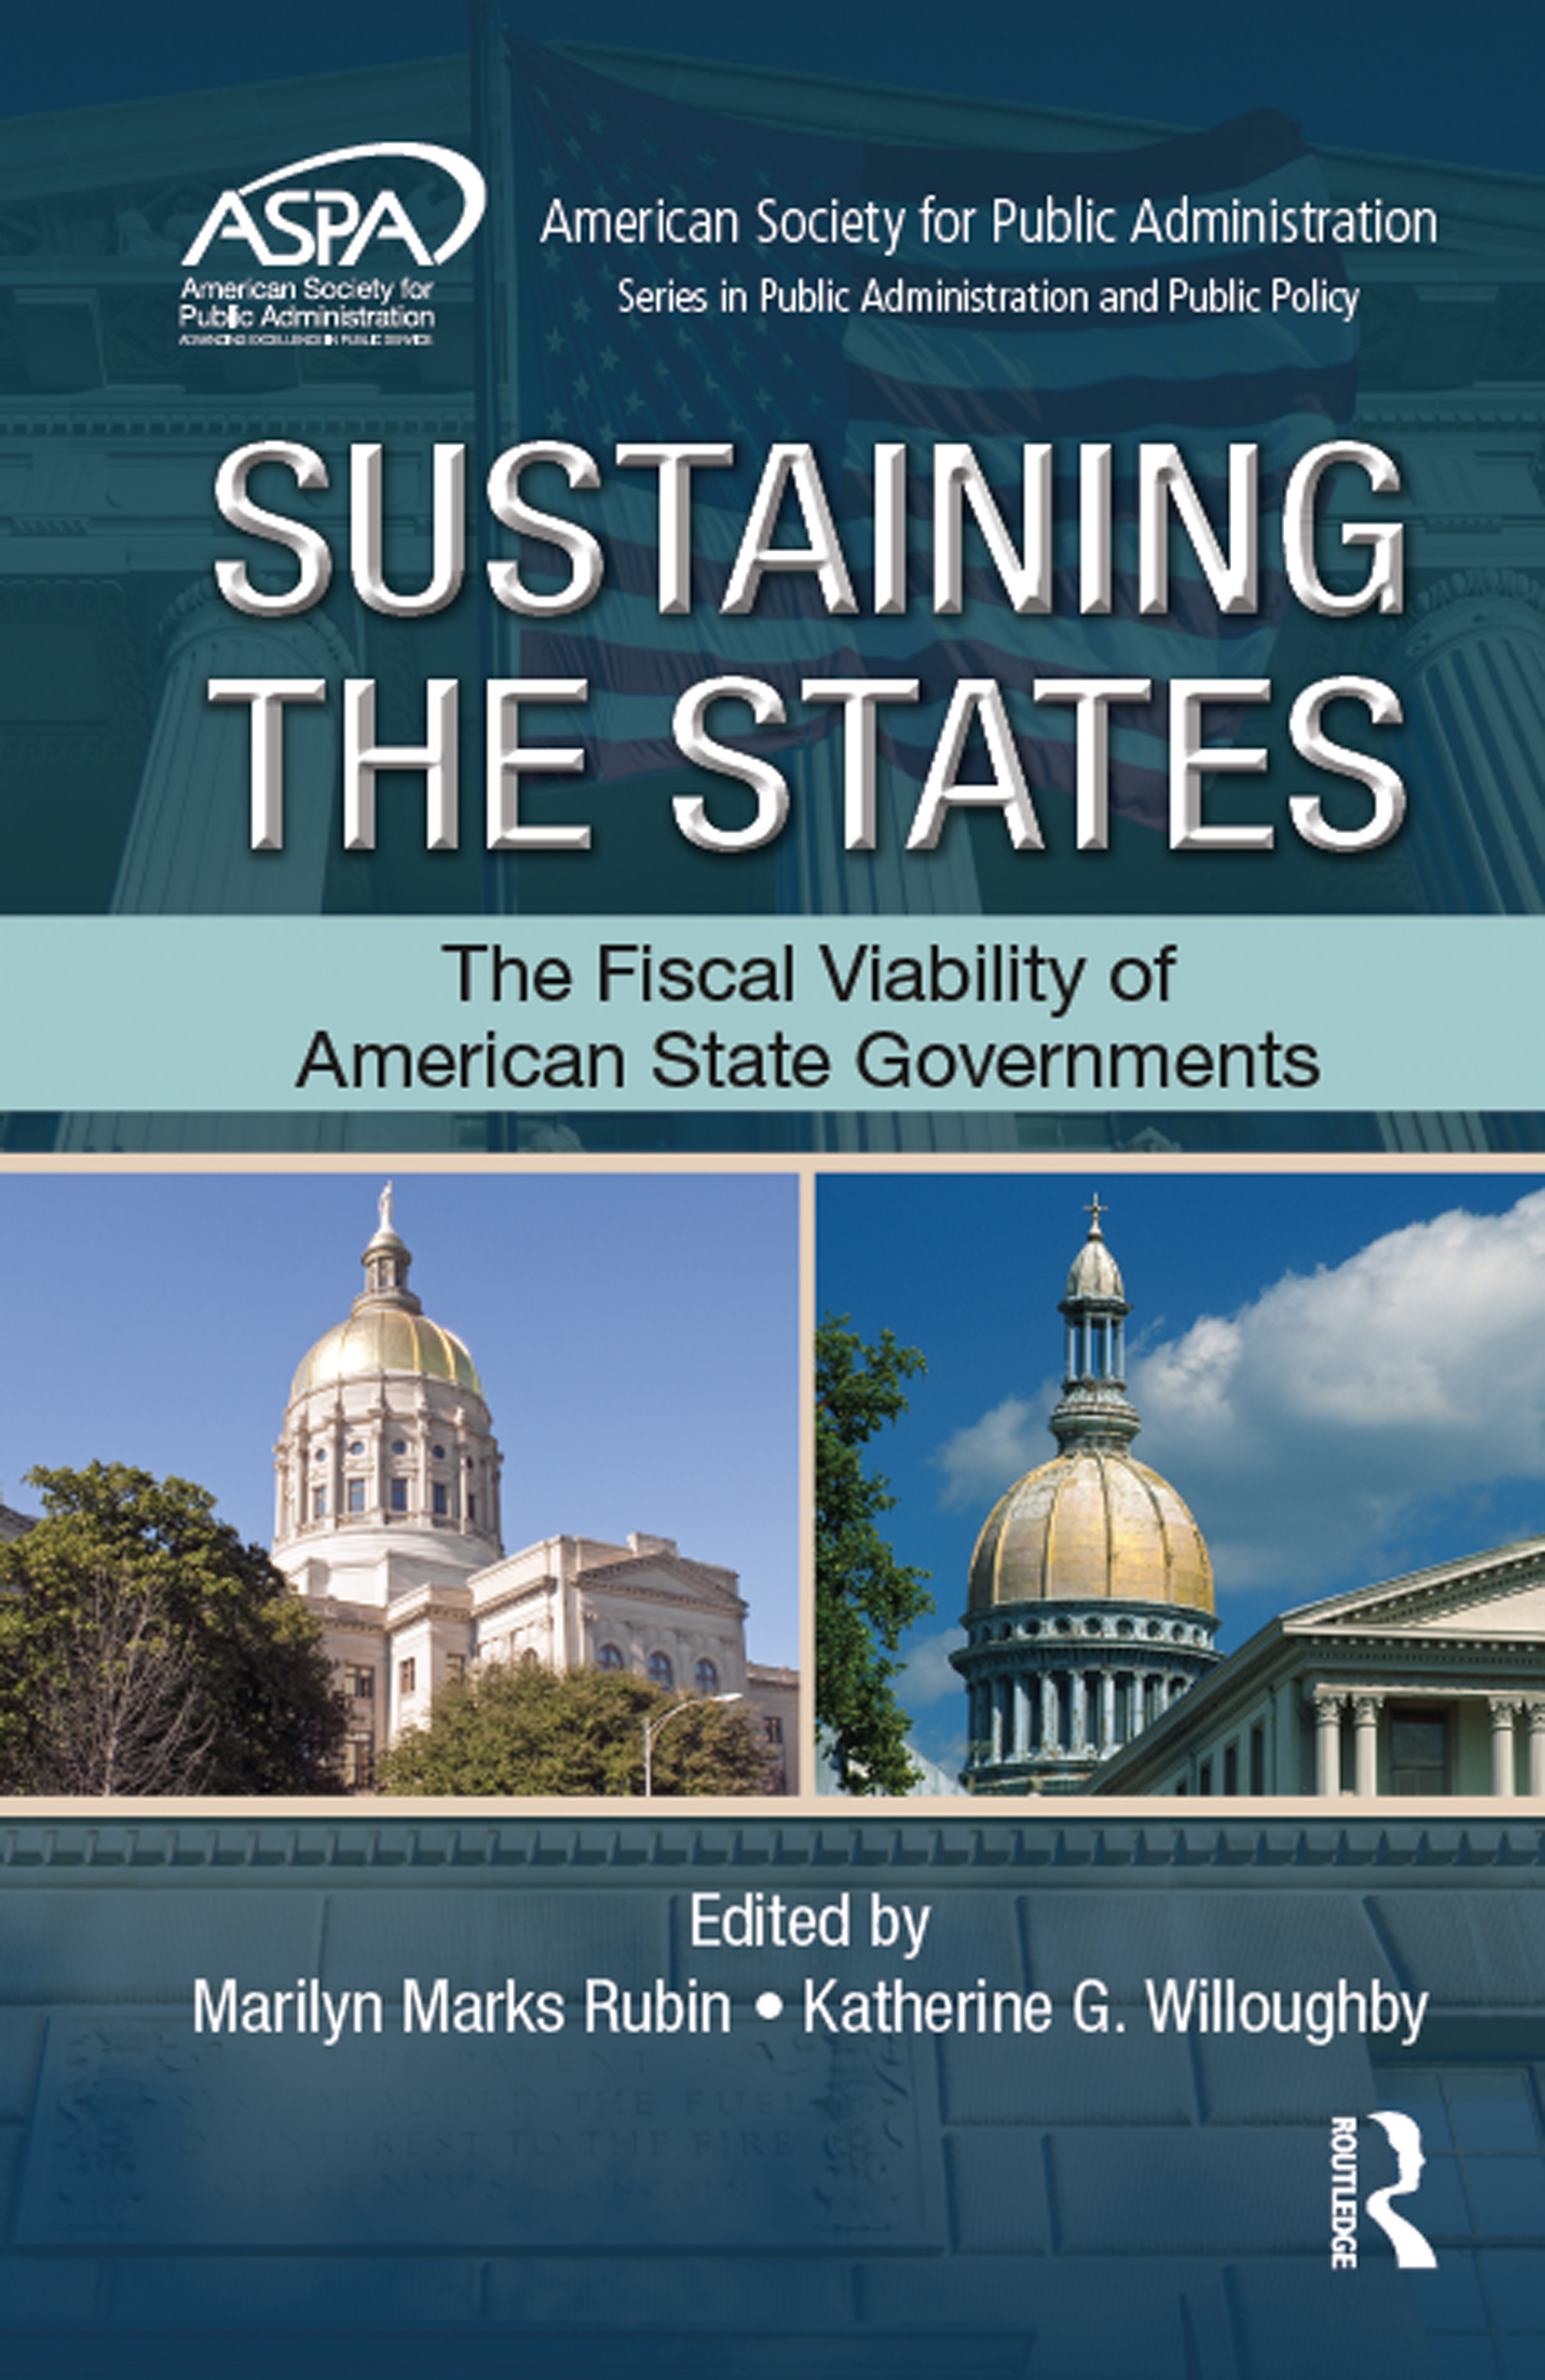 Political Institutions for Sustainable State Budgets